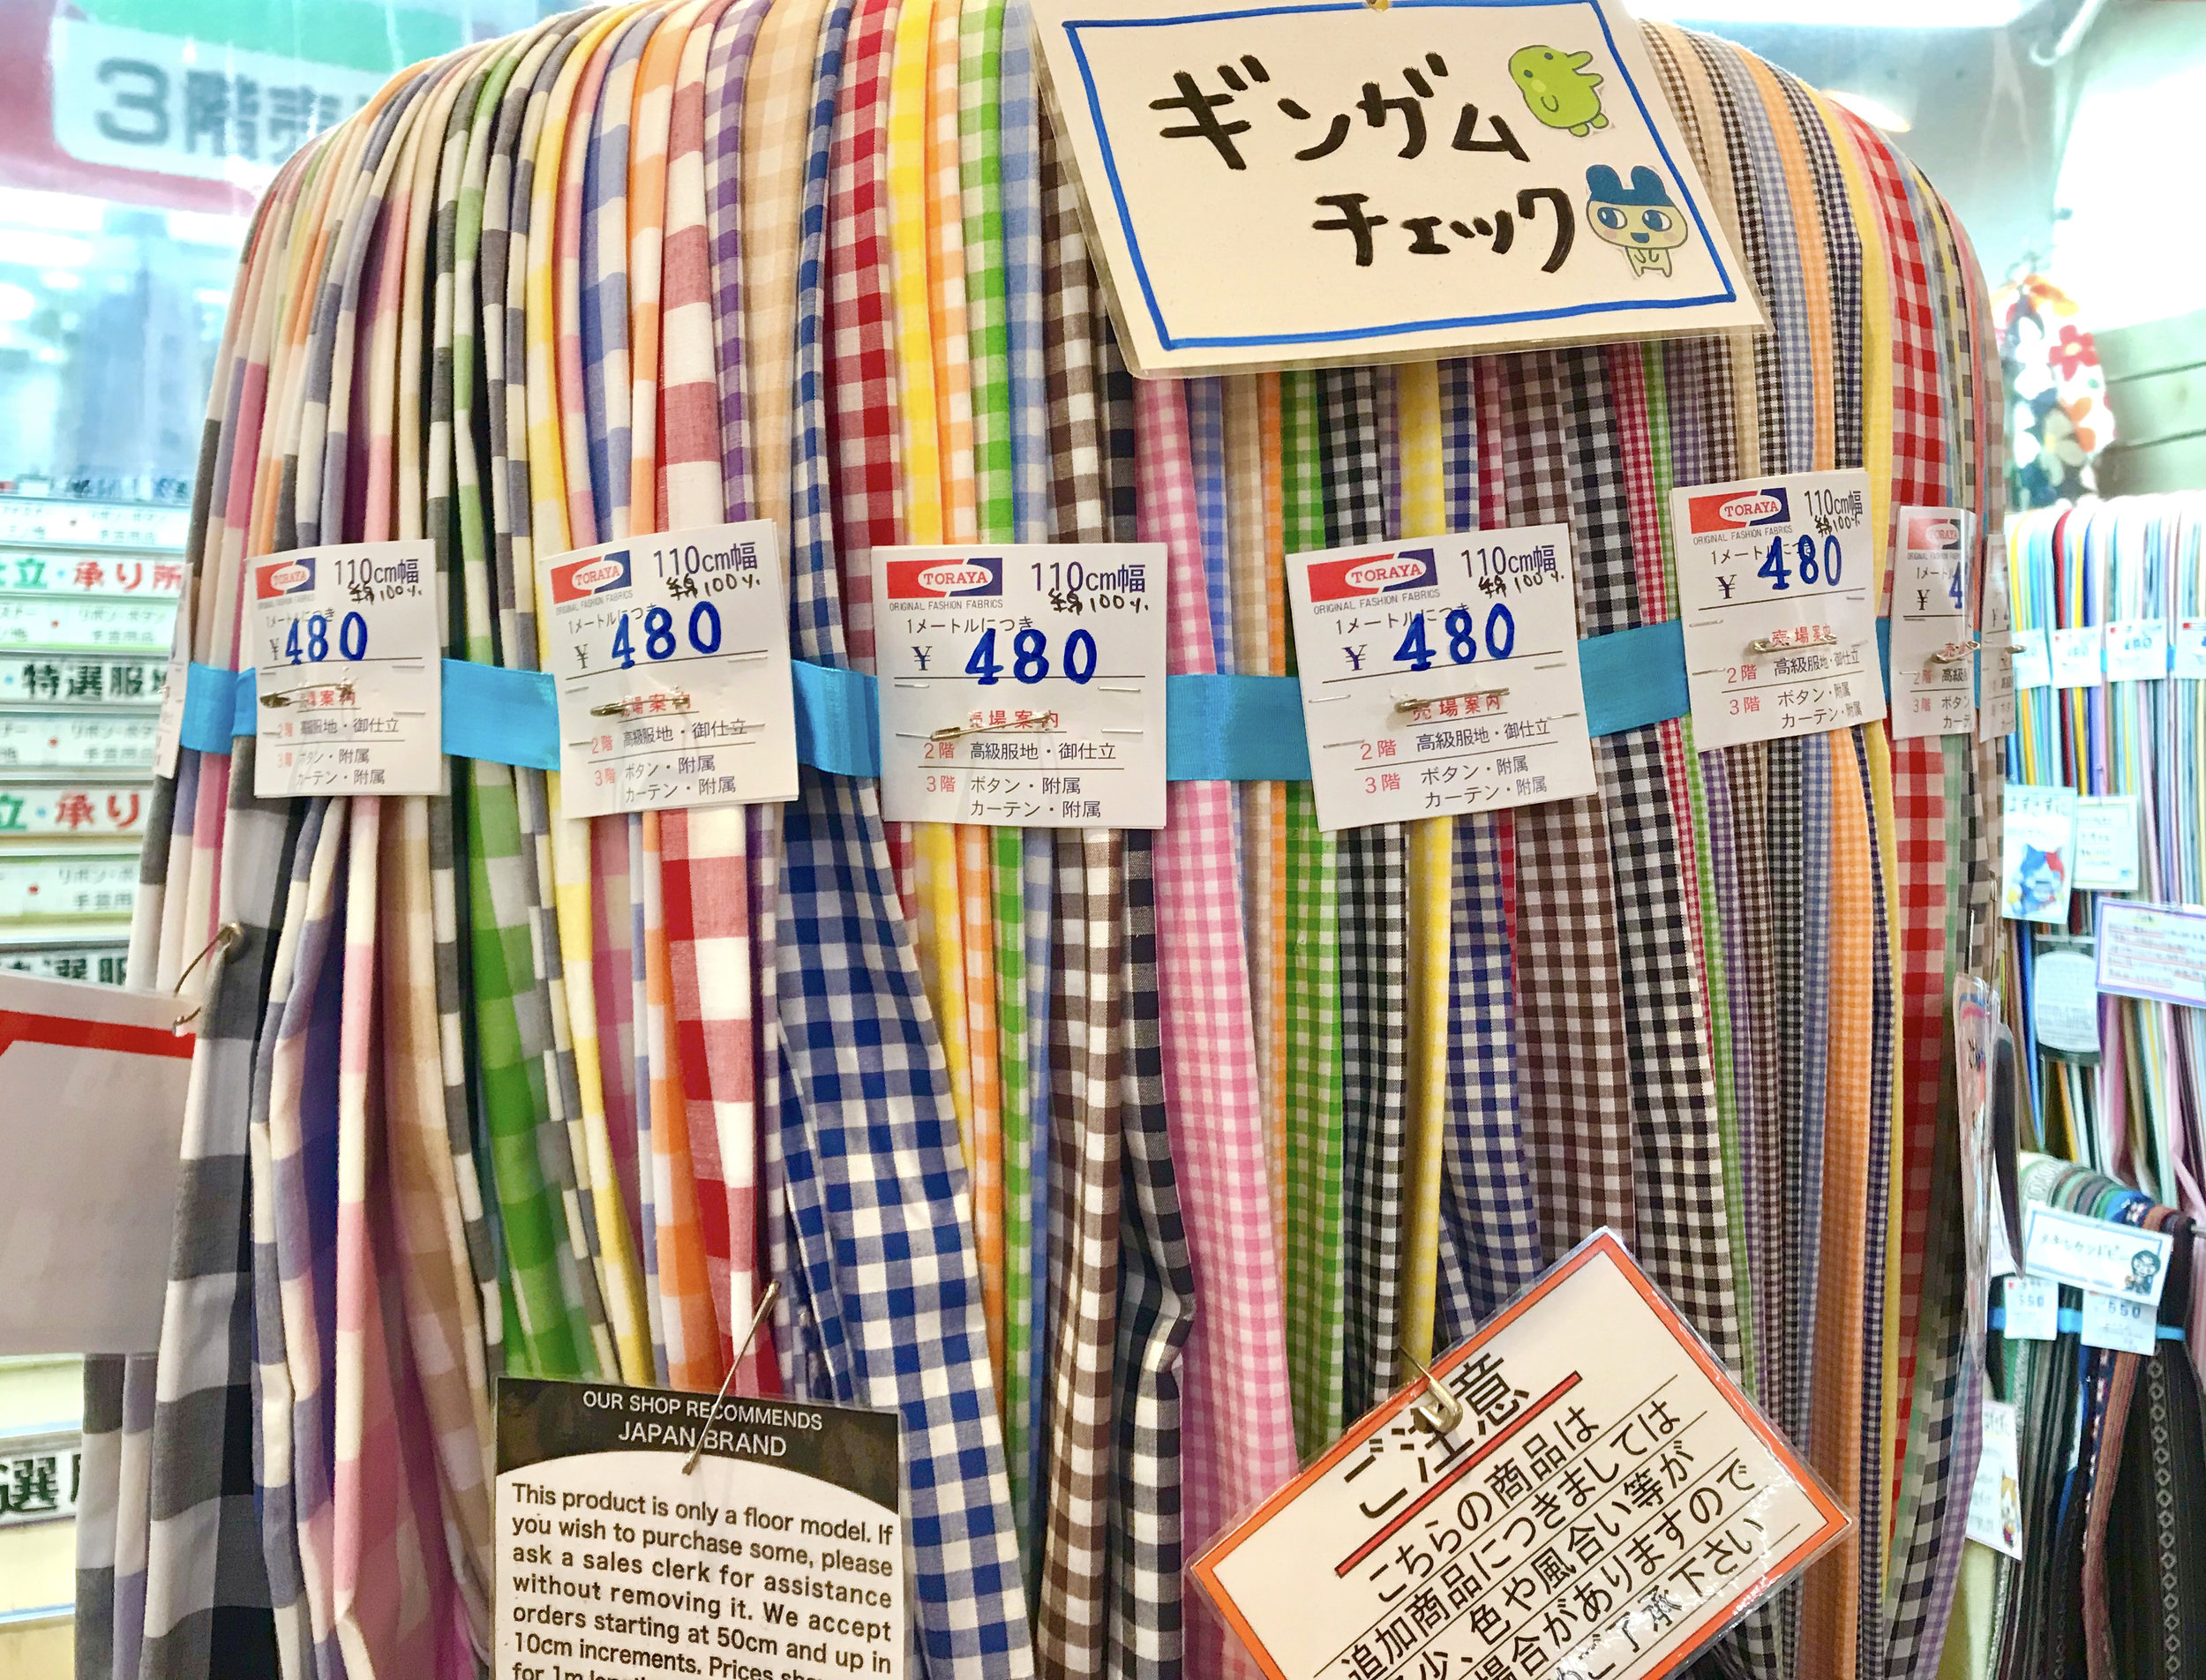 """This is  part of  their 100% cotton woven gingham fabric selection. From 1/8"""" to 1.5"""" plaid, all sizes are available in the full range of colors, ideal for mixing scales and having the color match."""